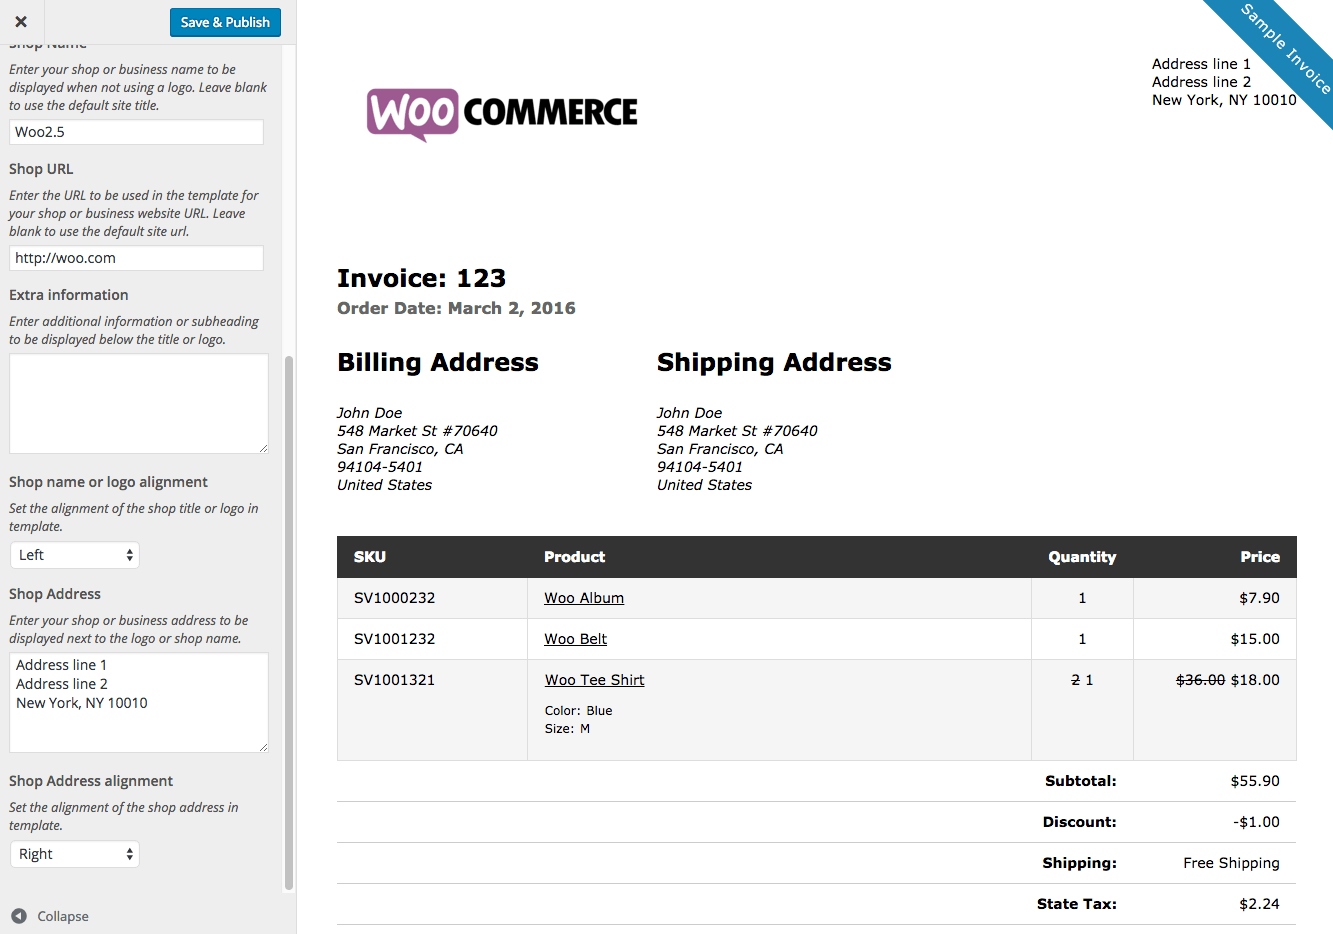 Shopdesignsus  Scenic Print Invoices Amp Packing Lists  Woocommerce With Fetching Woocommerce Print Invoices  Packing Lists Customizer With Awesome Auto Repair Receipt Also Parking Receipt In Addition Rent Payment Receipt And Gnc Return Policy Without Receipt As Well As Receipts For Taxes Additionally Forever  Return Policy No Receipt From Woocommercecom With Shopdesignsus  Fetching Print Invoices Amp Packing Lists  Woocommerce With Awesome Woocommerce Print Invoices  Packing Lists Customizer And Scenic Auto Repair Receipt Also Parking Receipt In Addition Rent Payment Receipt From Woocommercecom